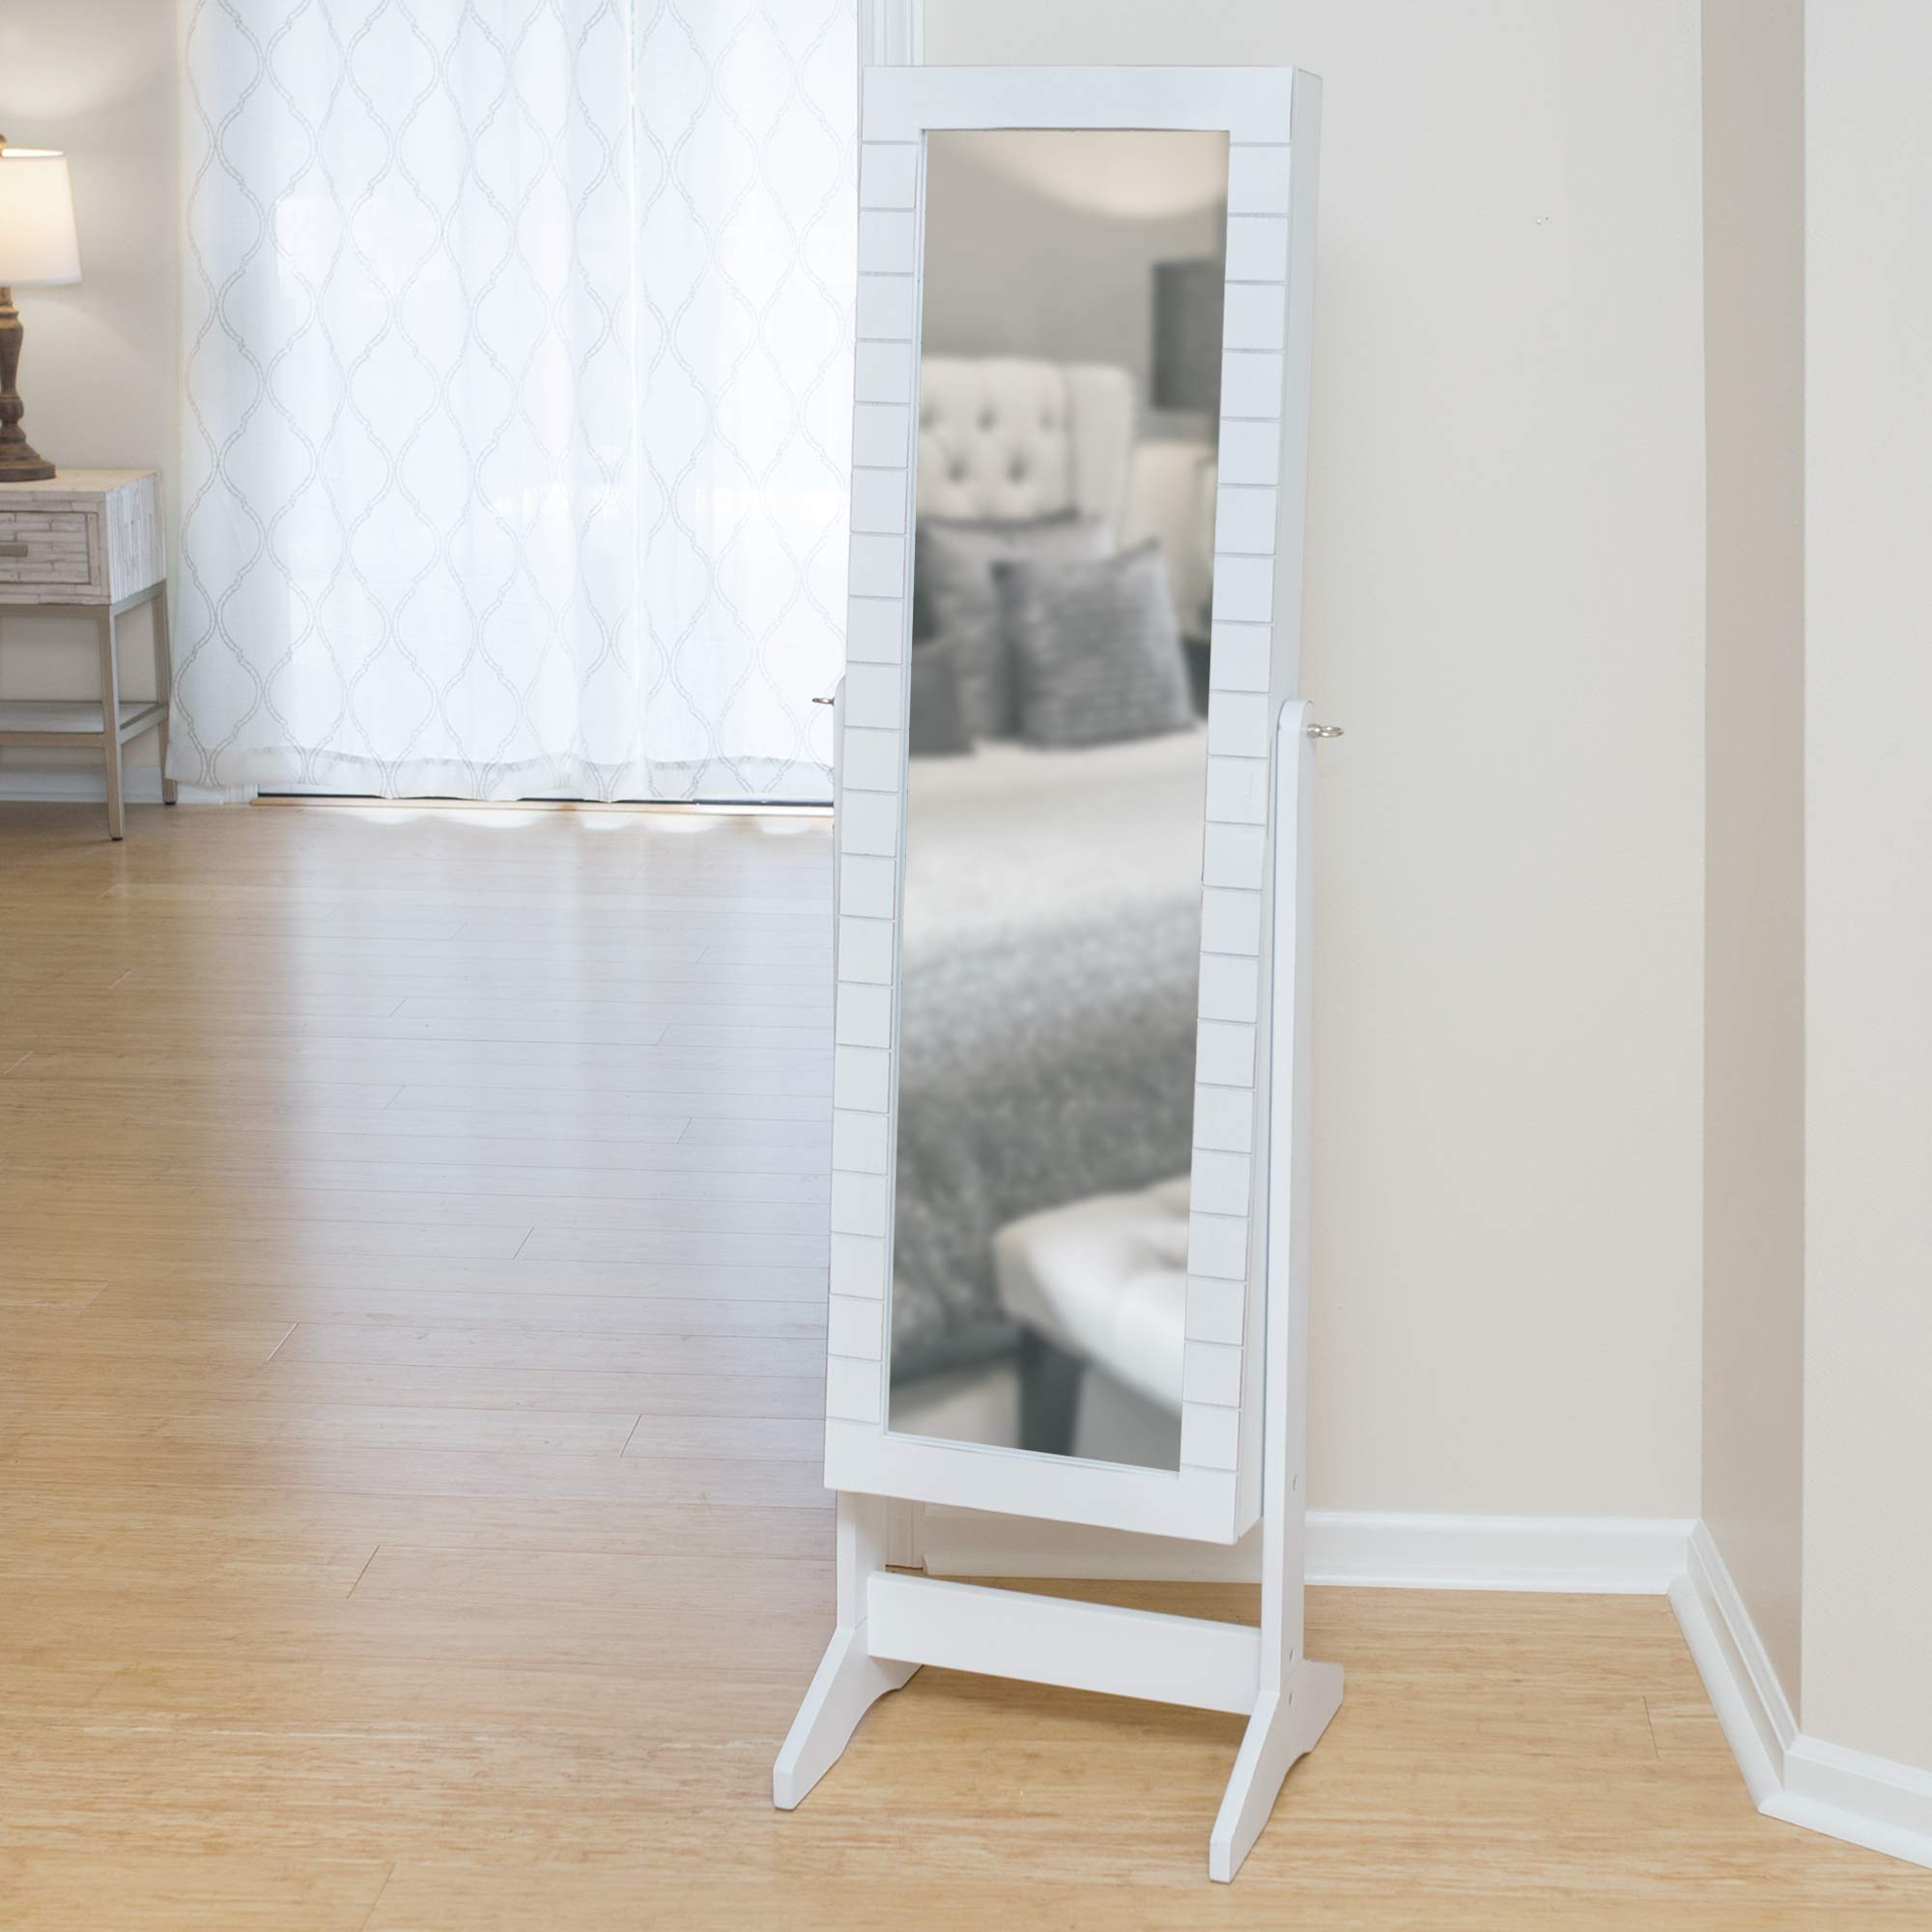 FirsTime & Co. 81008 Shiplap Cheval Jewelry Armoire Accent Wall Mirror, 57.5'' x 16.25'' x 14.5'', White by FirsTime & Co.